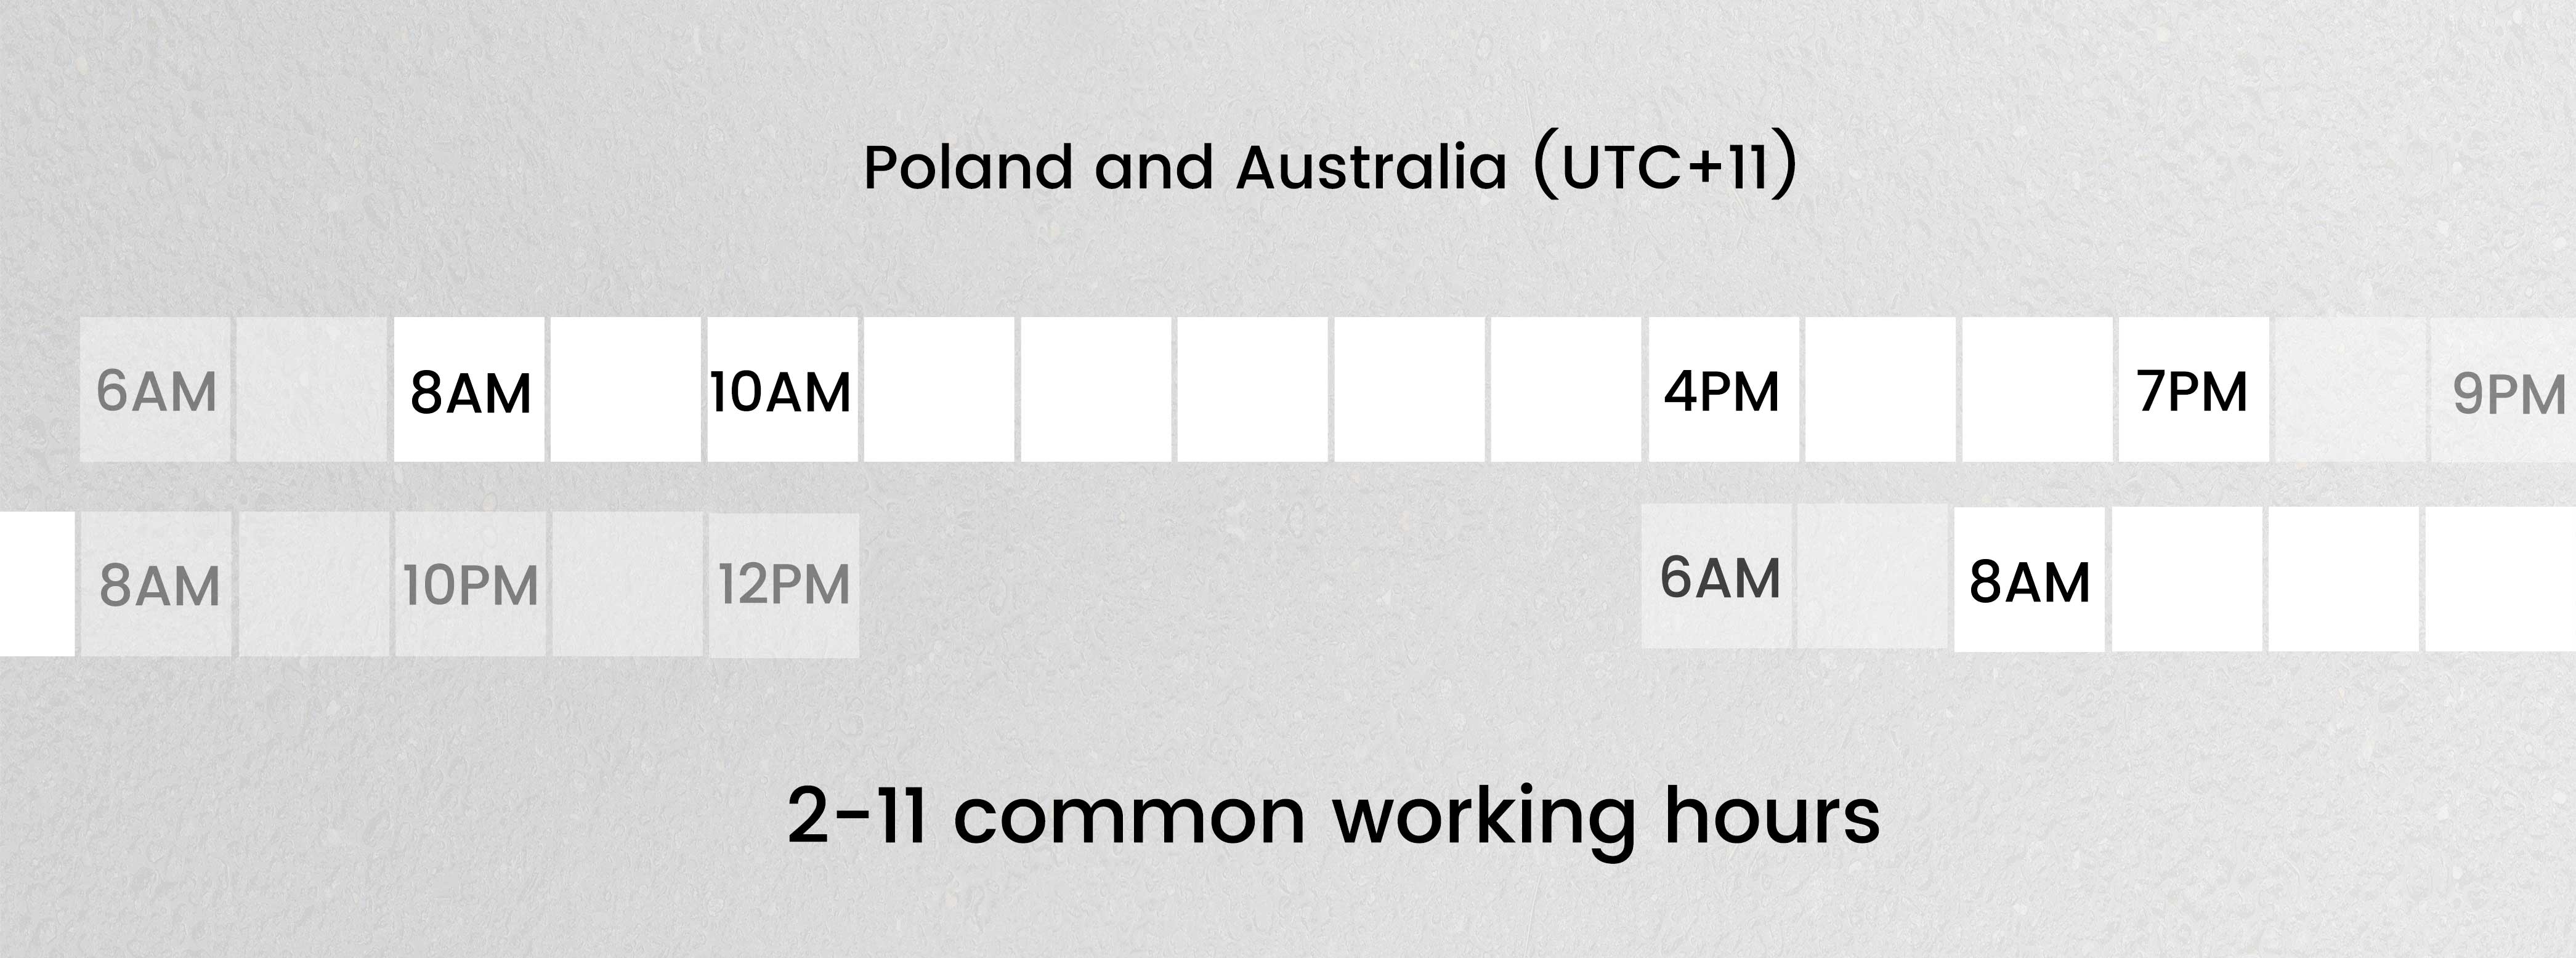 Australia and Poland common working hours in different timezones